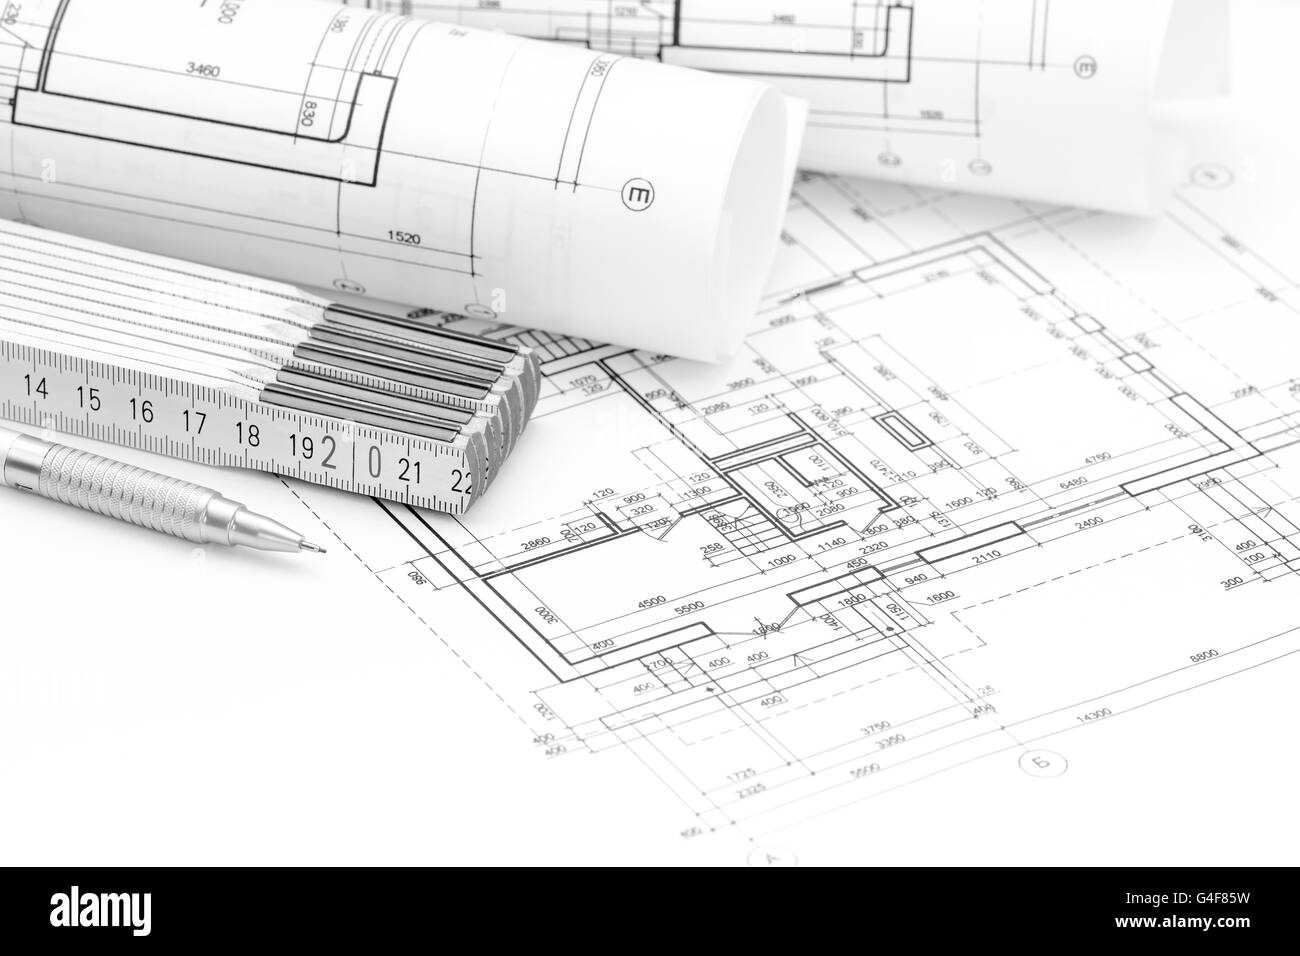 Architect workspace blueprint rolls floor stock photos architect architect workspace with plan blueprint rolls folding rule and pencil stock image malvernweather Images